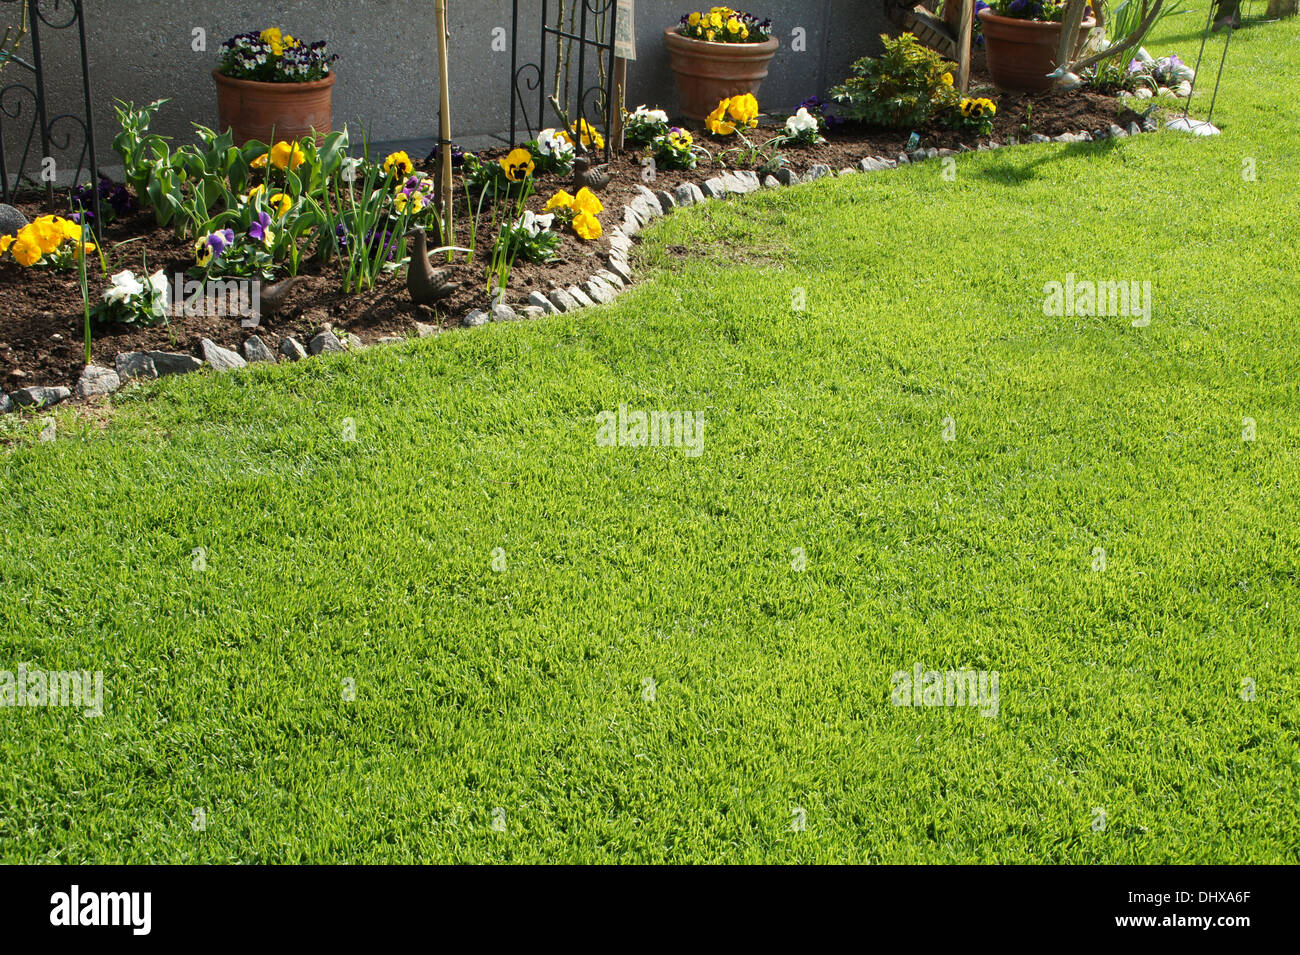 Lawn - Stock Image